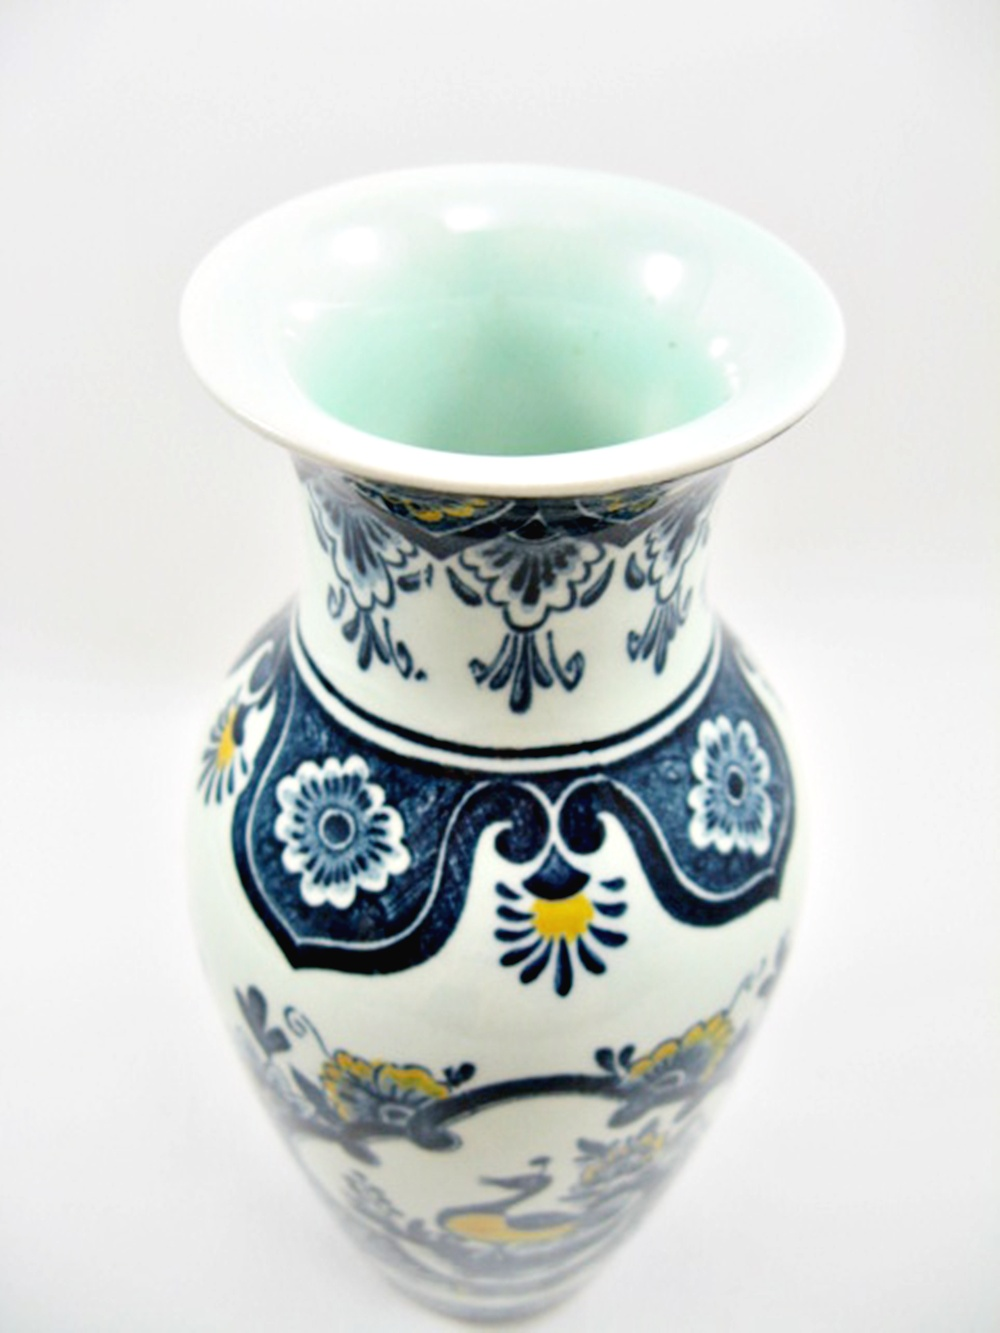 villeroy and boch paon vase blue approx 8 cm height approx 16 5 cm ebay. Black Bedroom Furniture Sets. Home Design Ideas